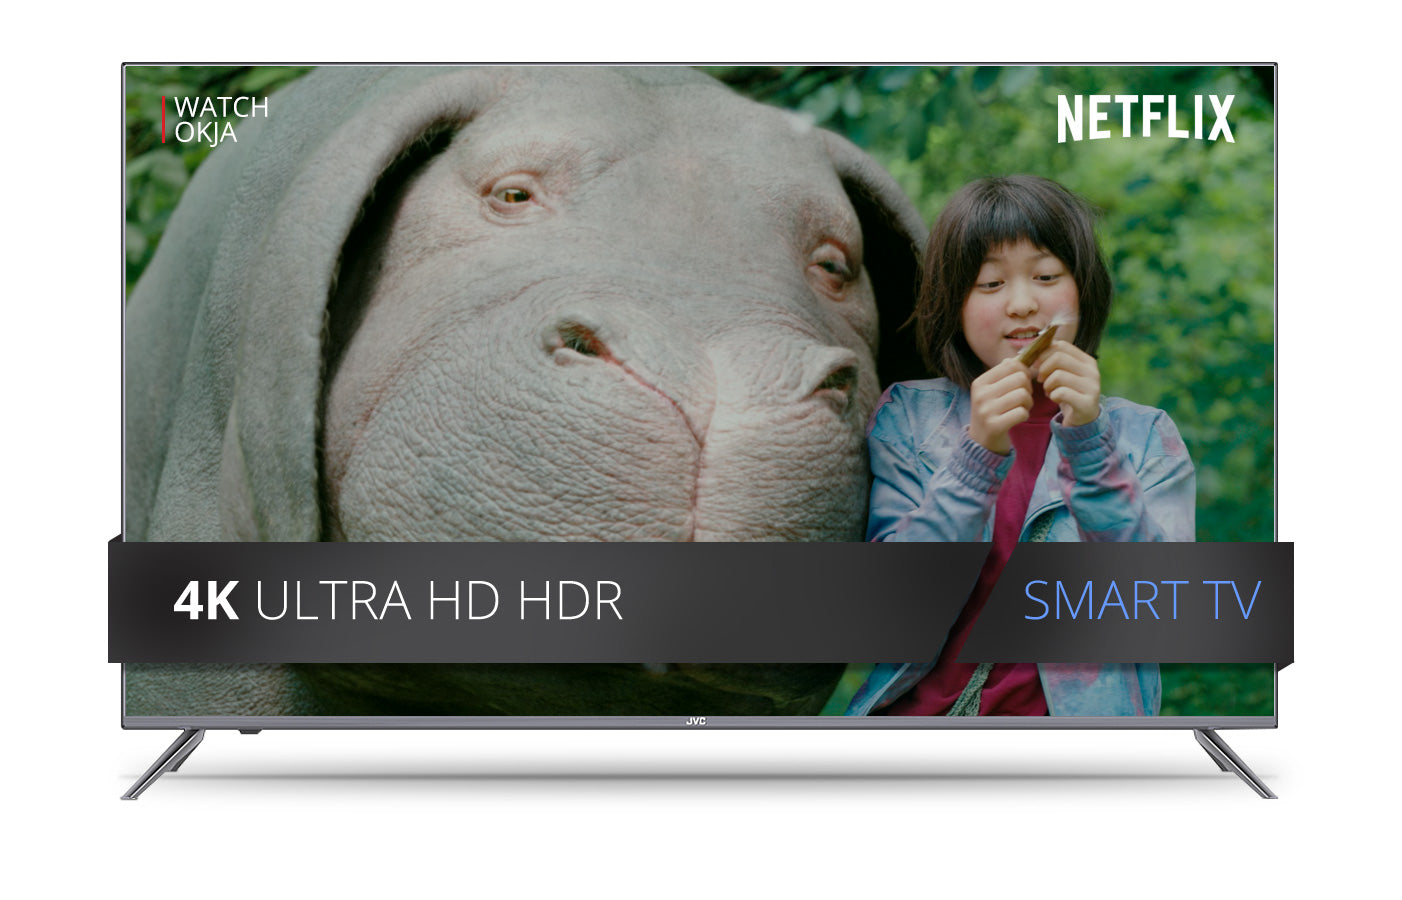 jvc 55 4k ultra hd hdr smart tv jvcsmart